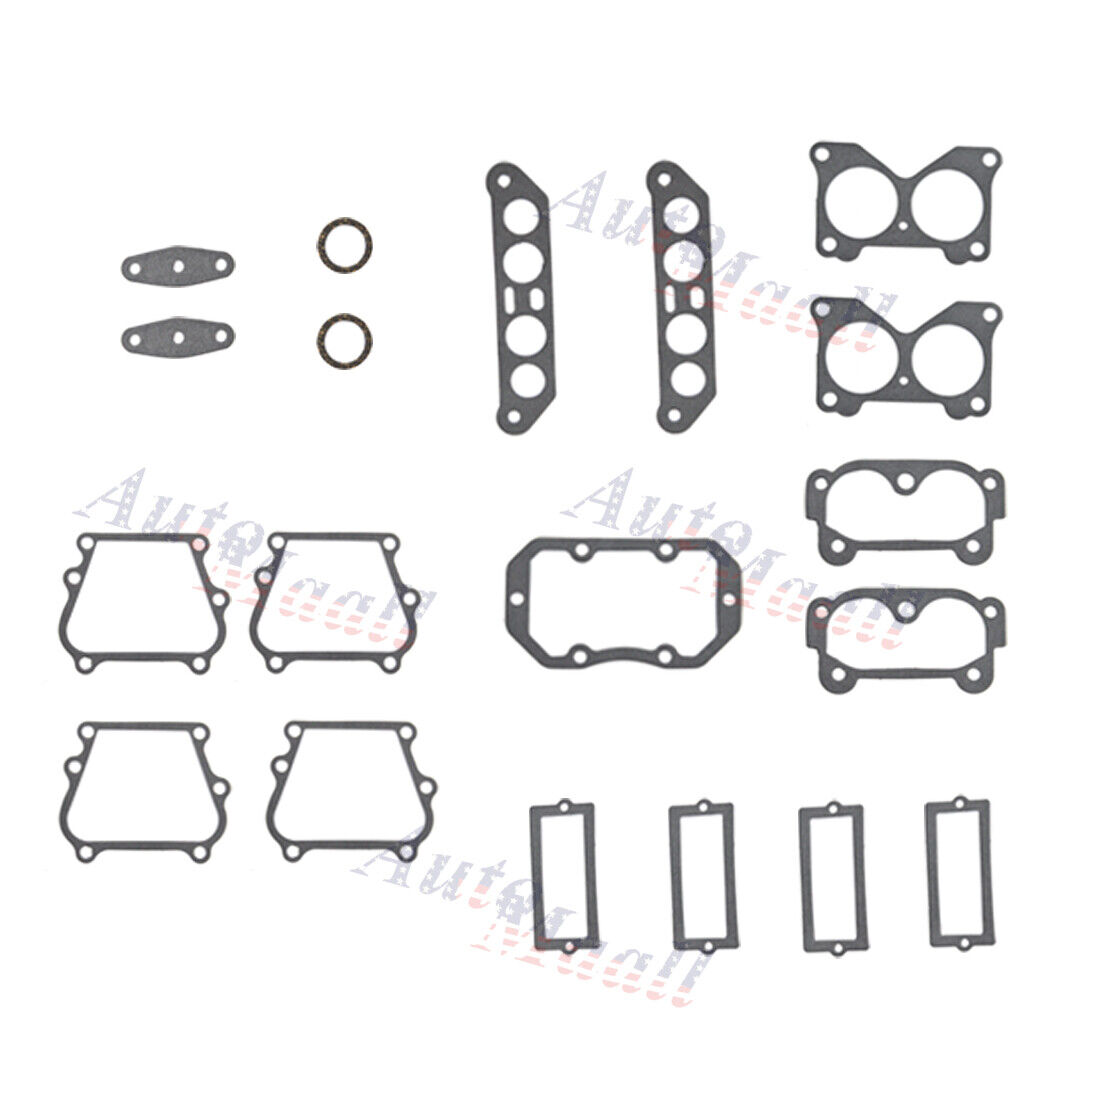 Powerhead Gasket Kit for Johnson Evinrude V4 Crossflow